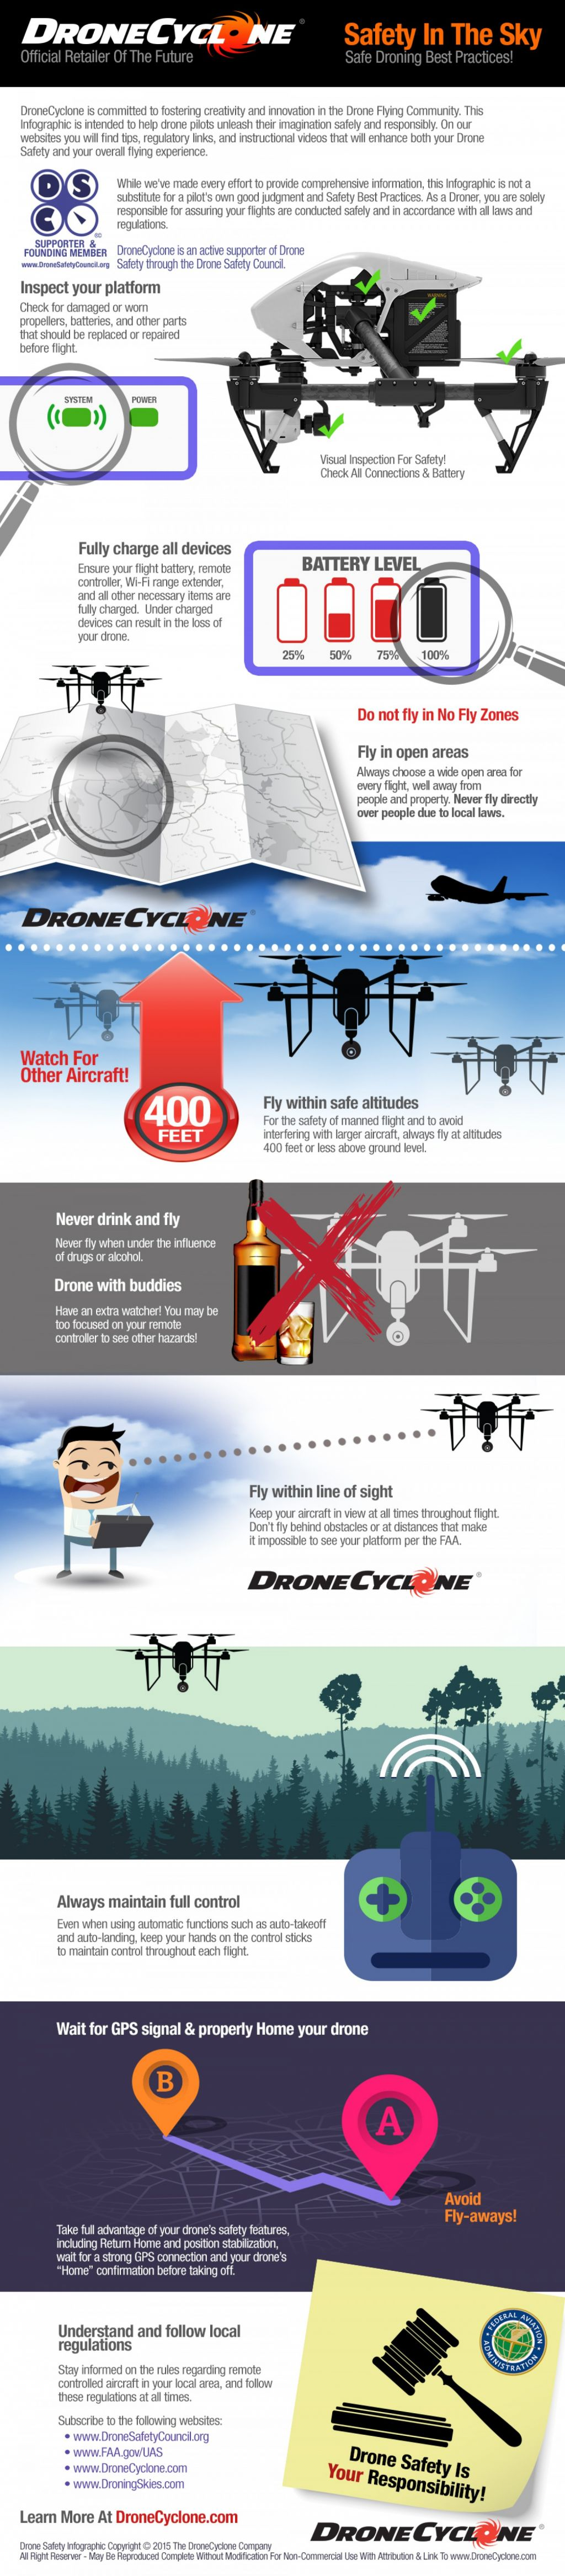 safety-in-the-sky_553589aa4dc63_w1500